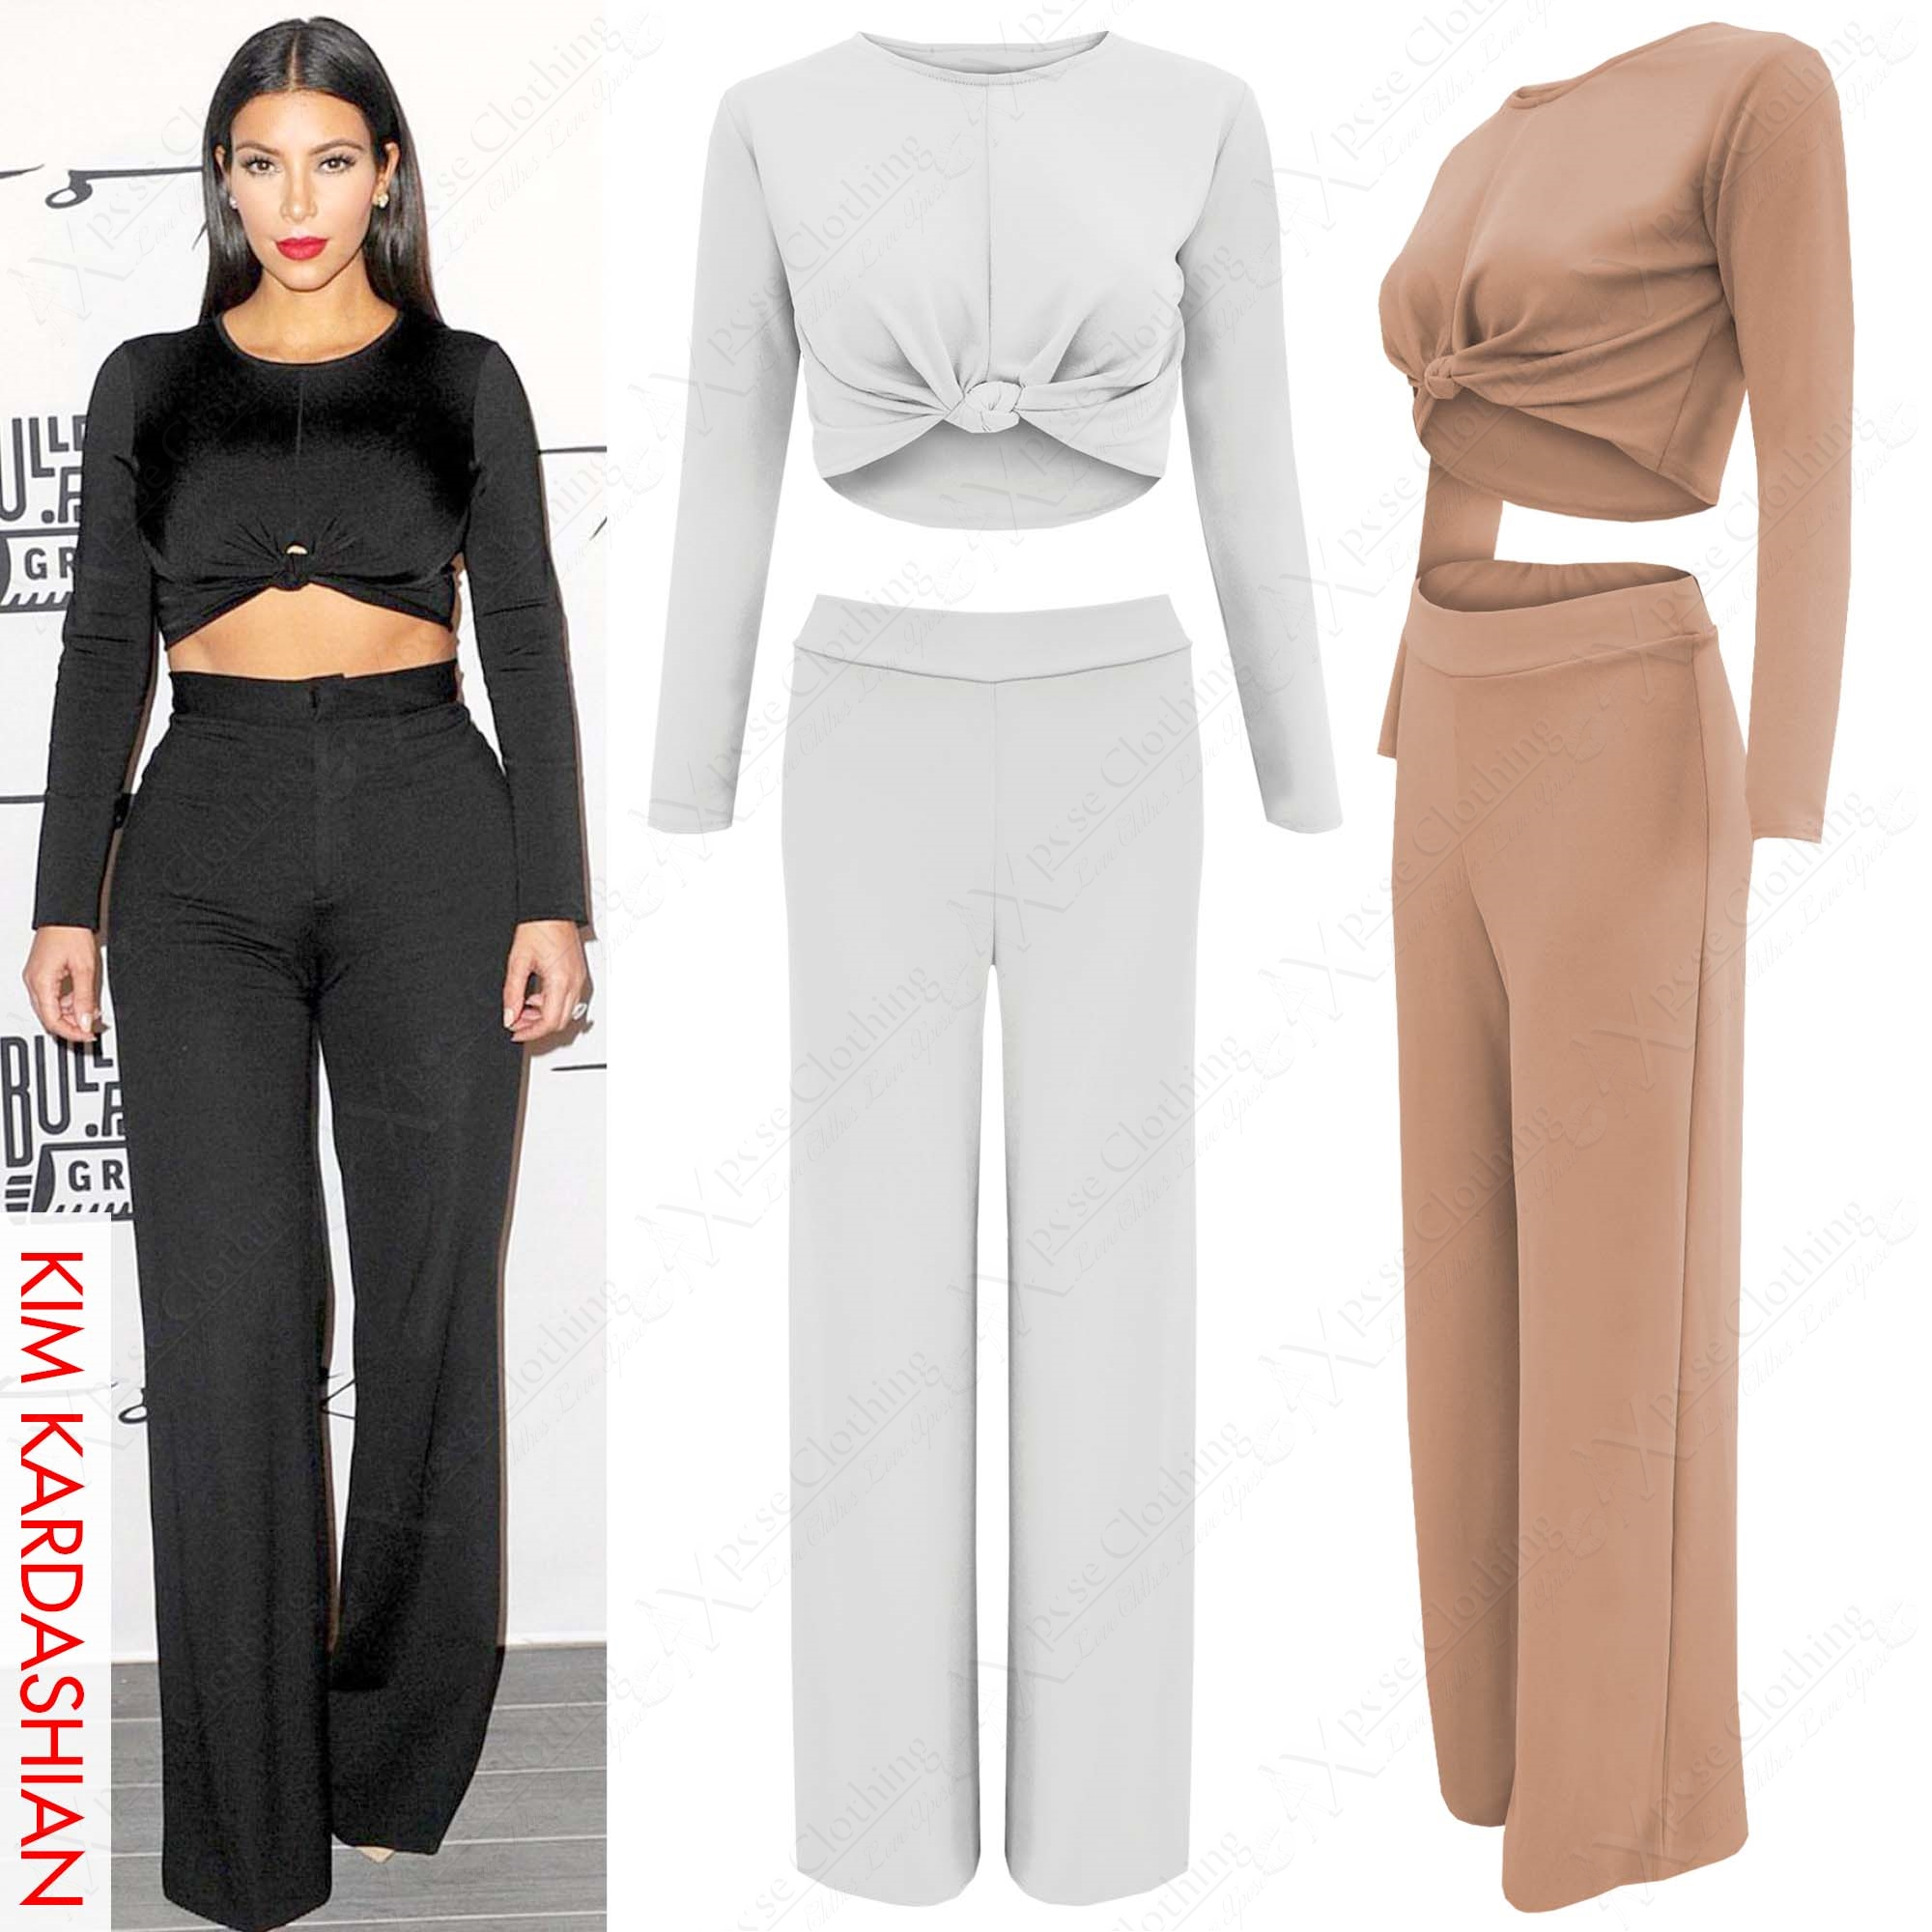 LADIES LONG SLEEVE KNOT CROP TOP PALAZZO TROUSERS SUIT WOMENS 2 ...